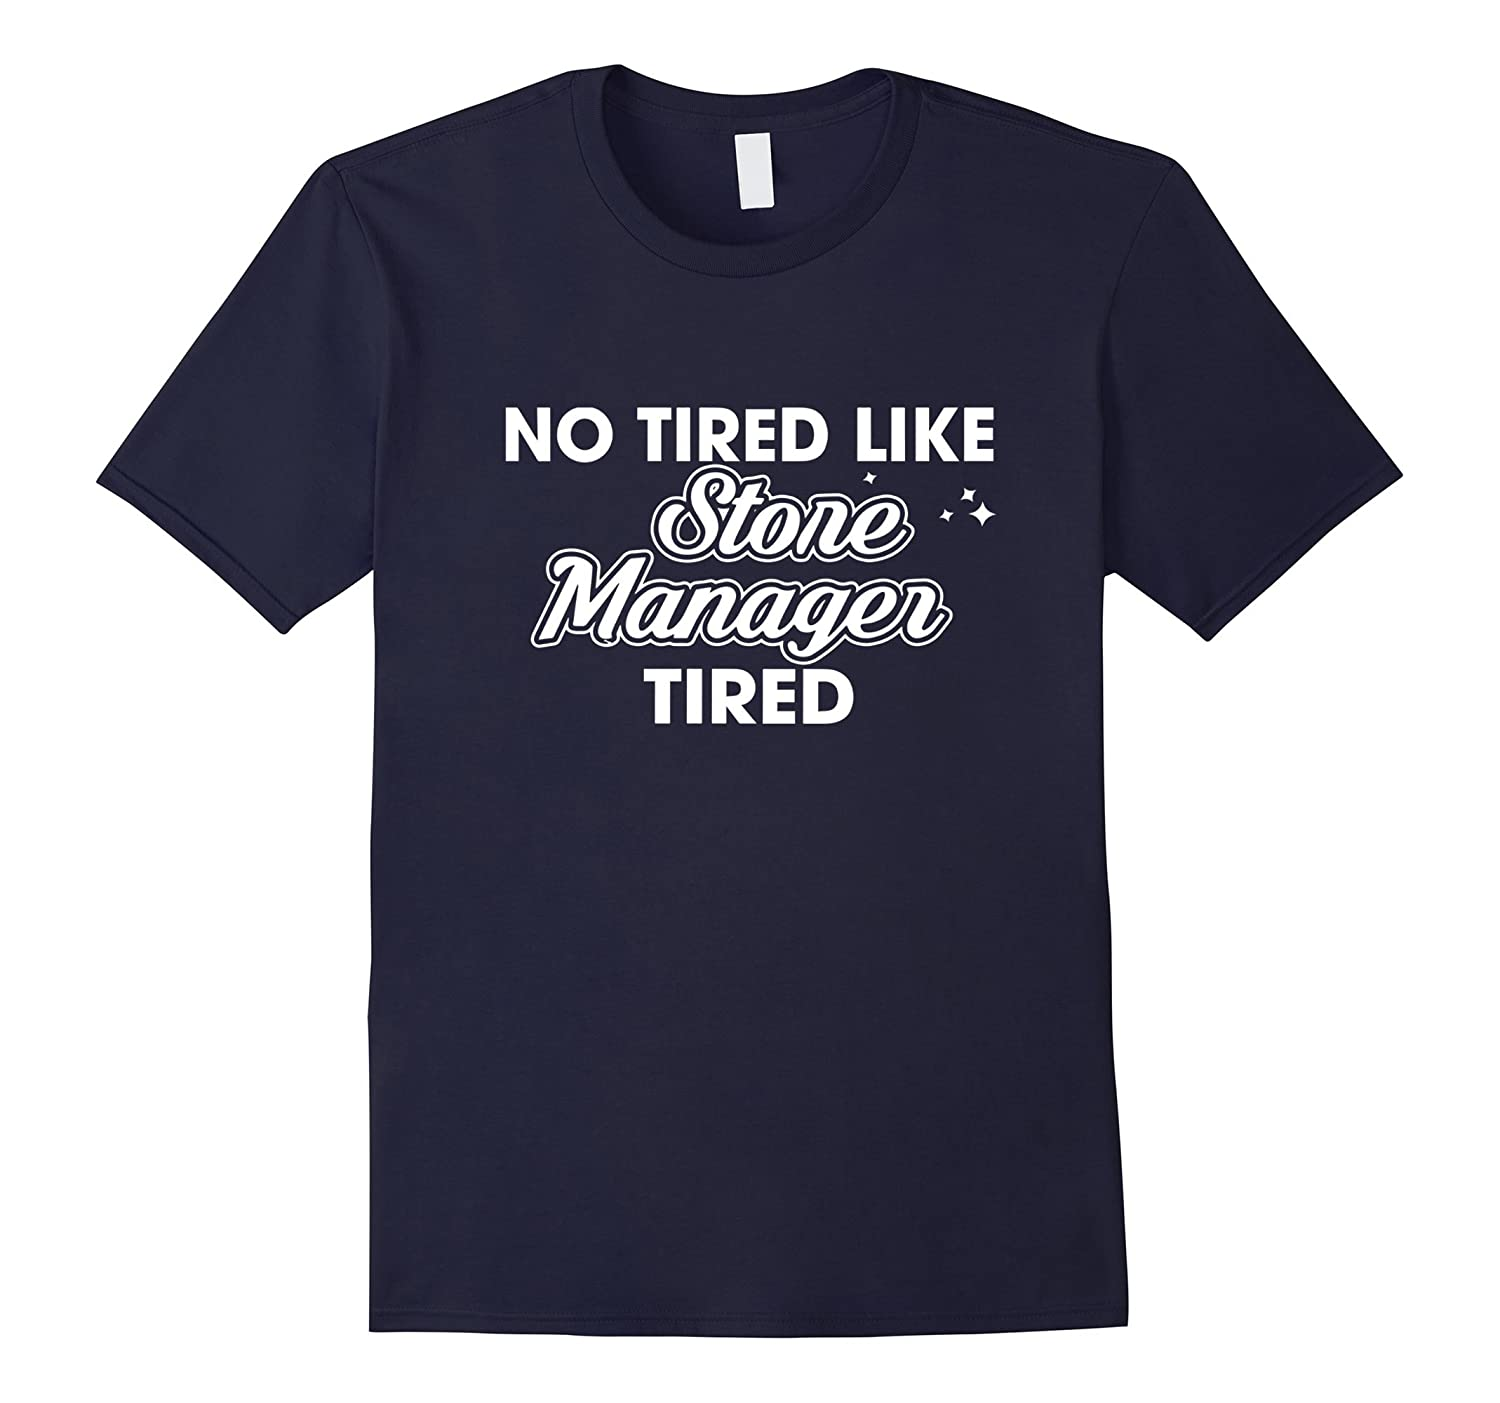 No tired like Store Manager tired T-shirt-TD